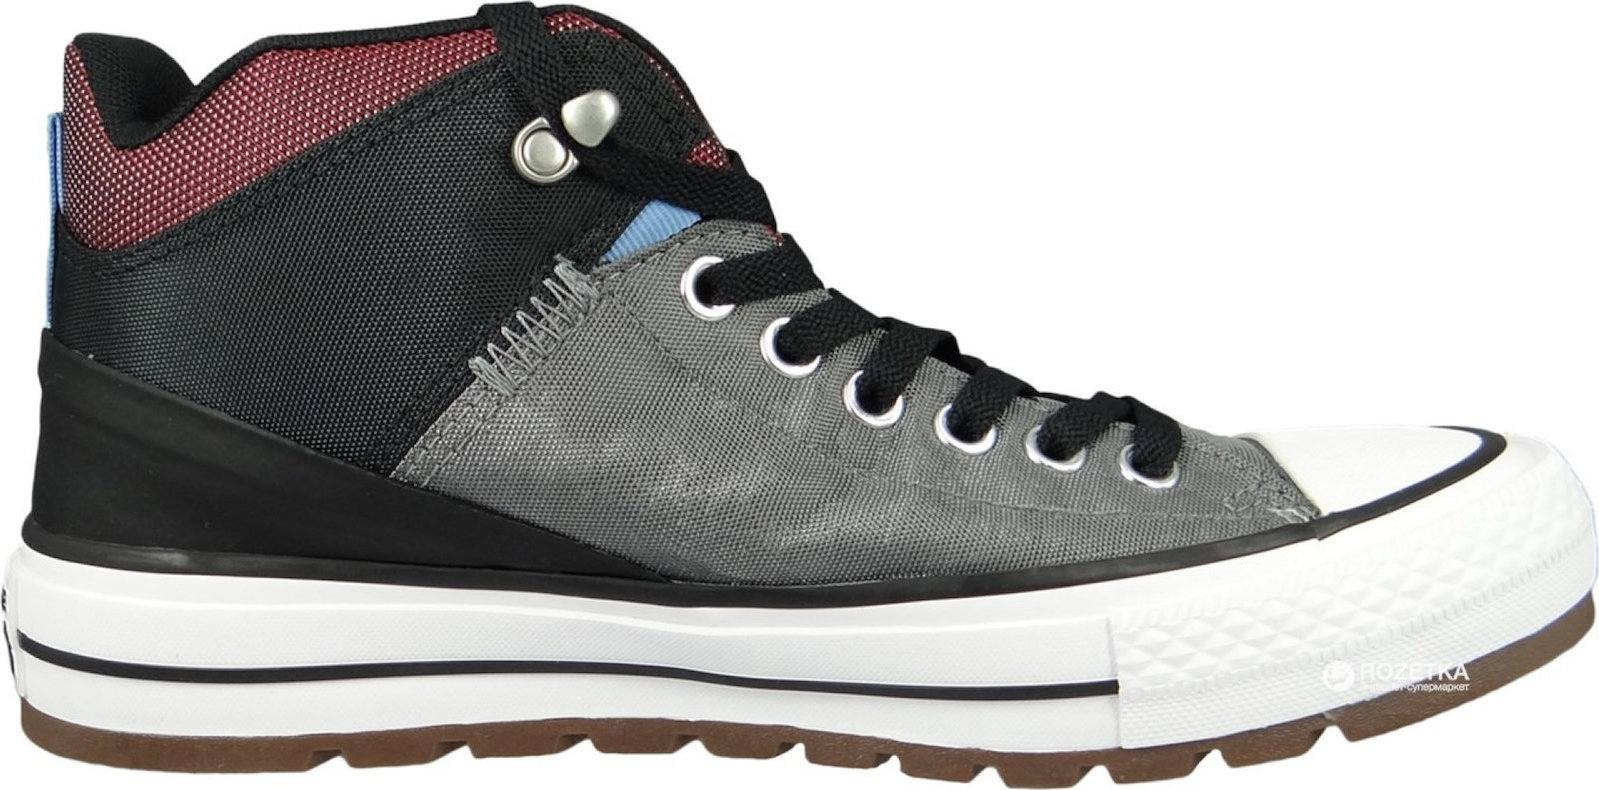 7fbfd1f22053 Προσθήκη στα αγαπημένα menu Converse Chuck Taylor All Star Street Boot Hi  161470C